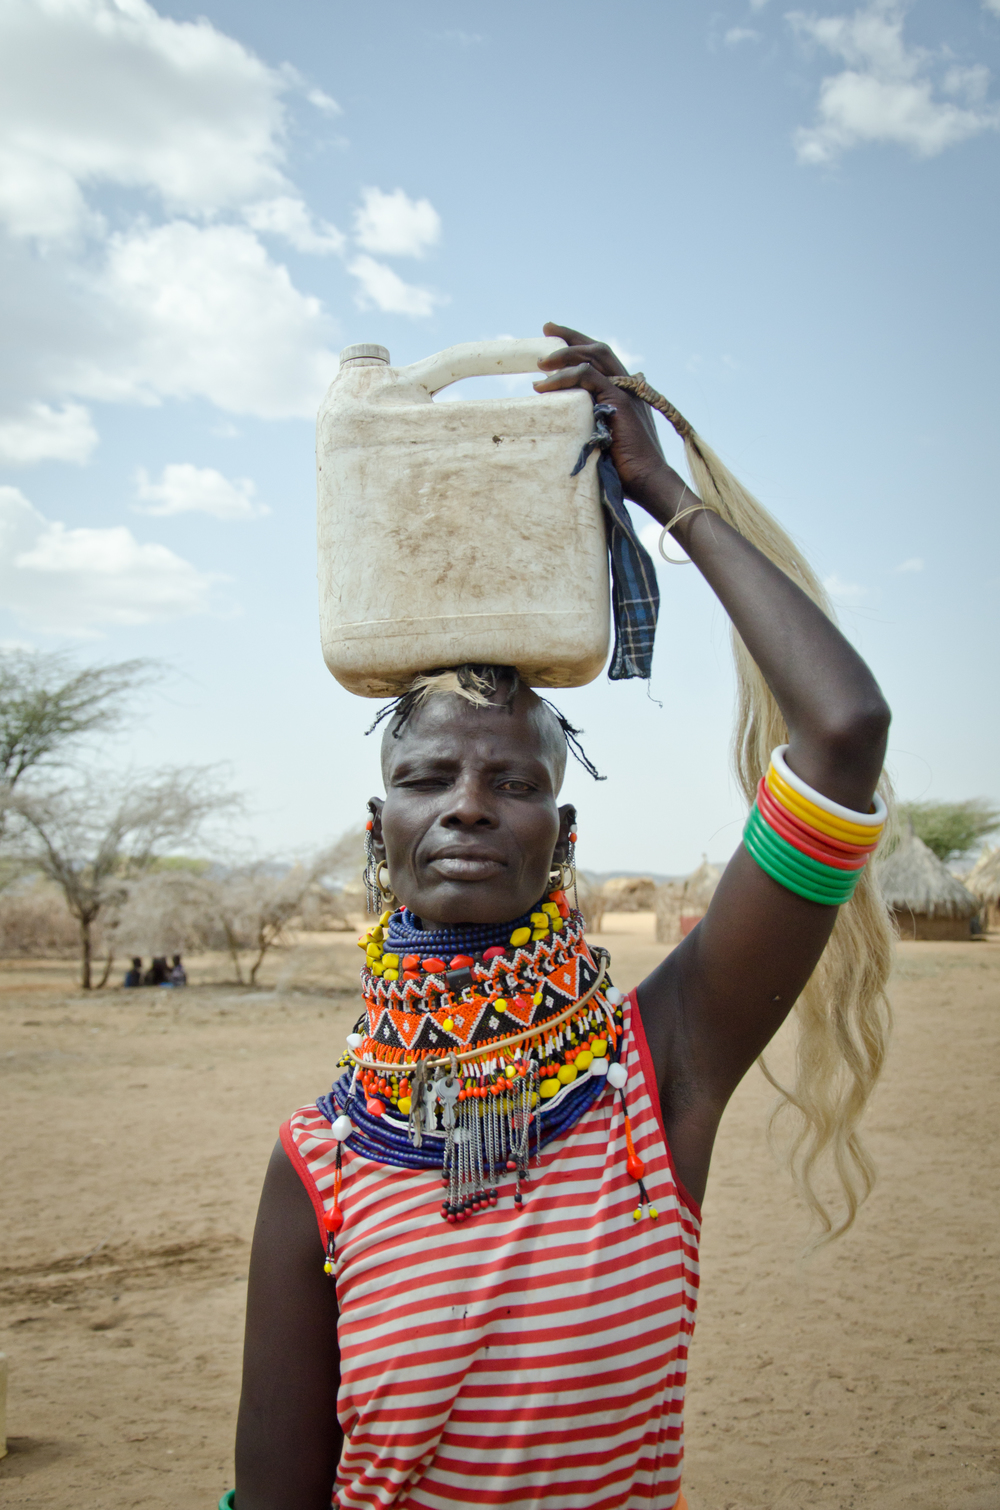 ​When the water truck doesn't come to Lopii, women have to walk 13km to get what their family needs for the day. Because that takes so long, sometimes they have to sleep at the water site, or risk being attacked by cattle rustlers or wild animals on the walk home.